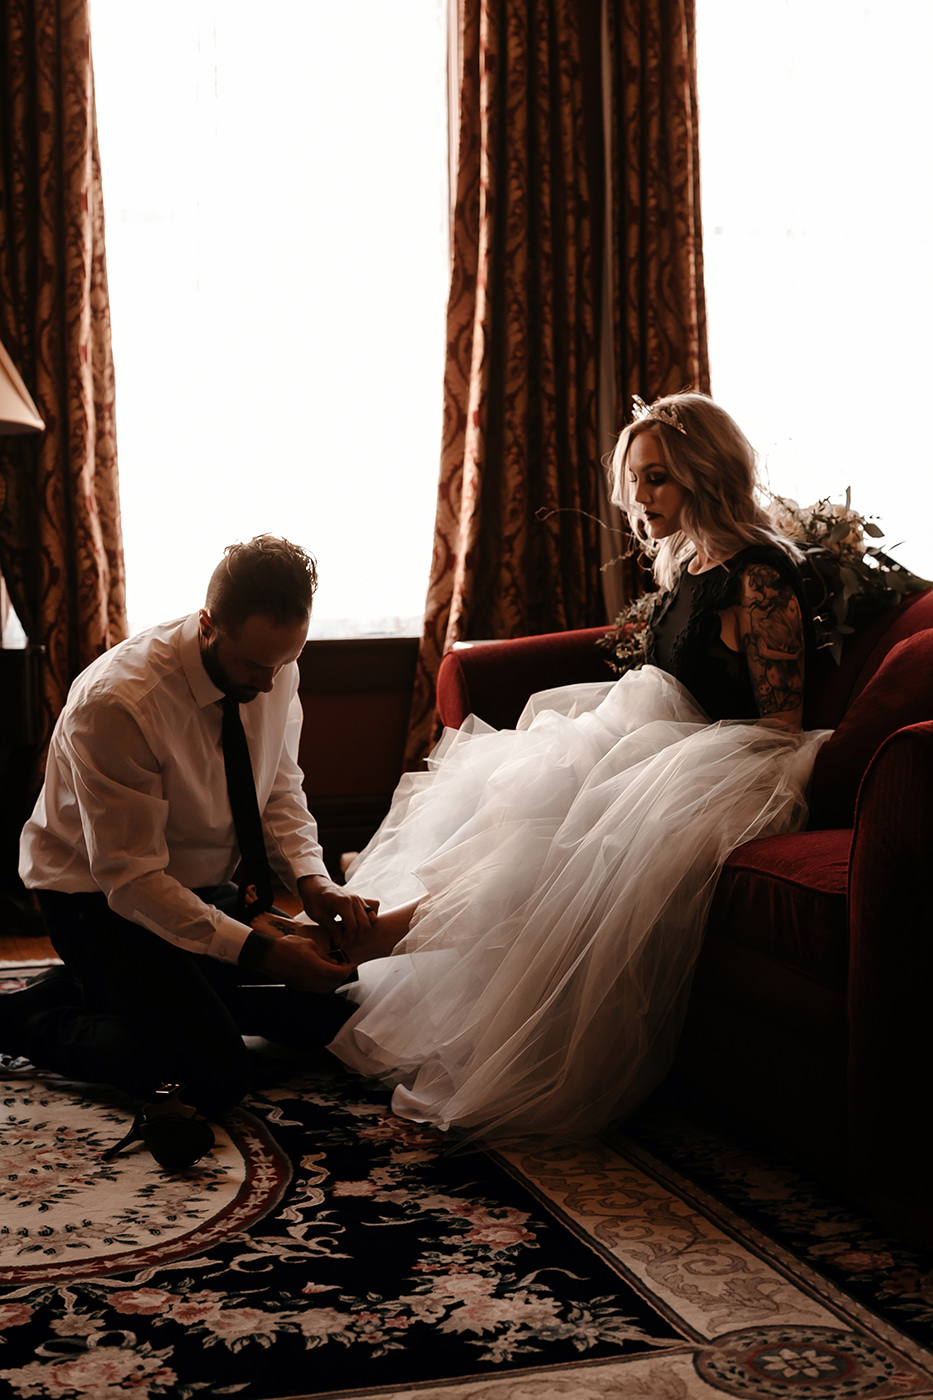 Liz Osban Photography Wedding Elopement Eloped engaged engagement couples session photographer deadwood south dakota wyoming beautiful vintage moody colorado mountains vintage best vintage lease martin mason hotel 53.jpg